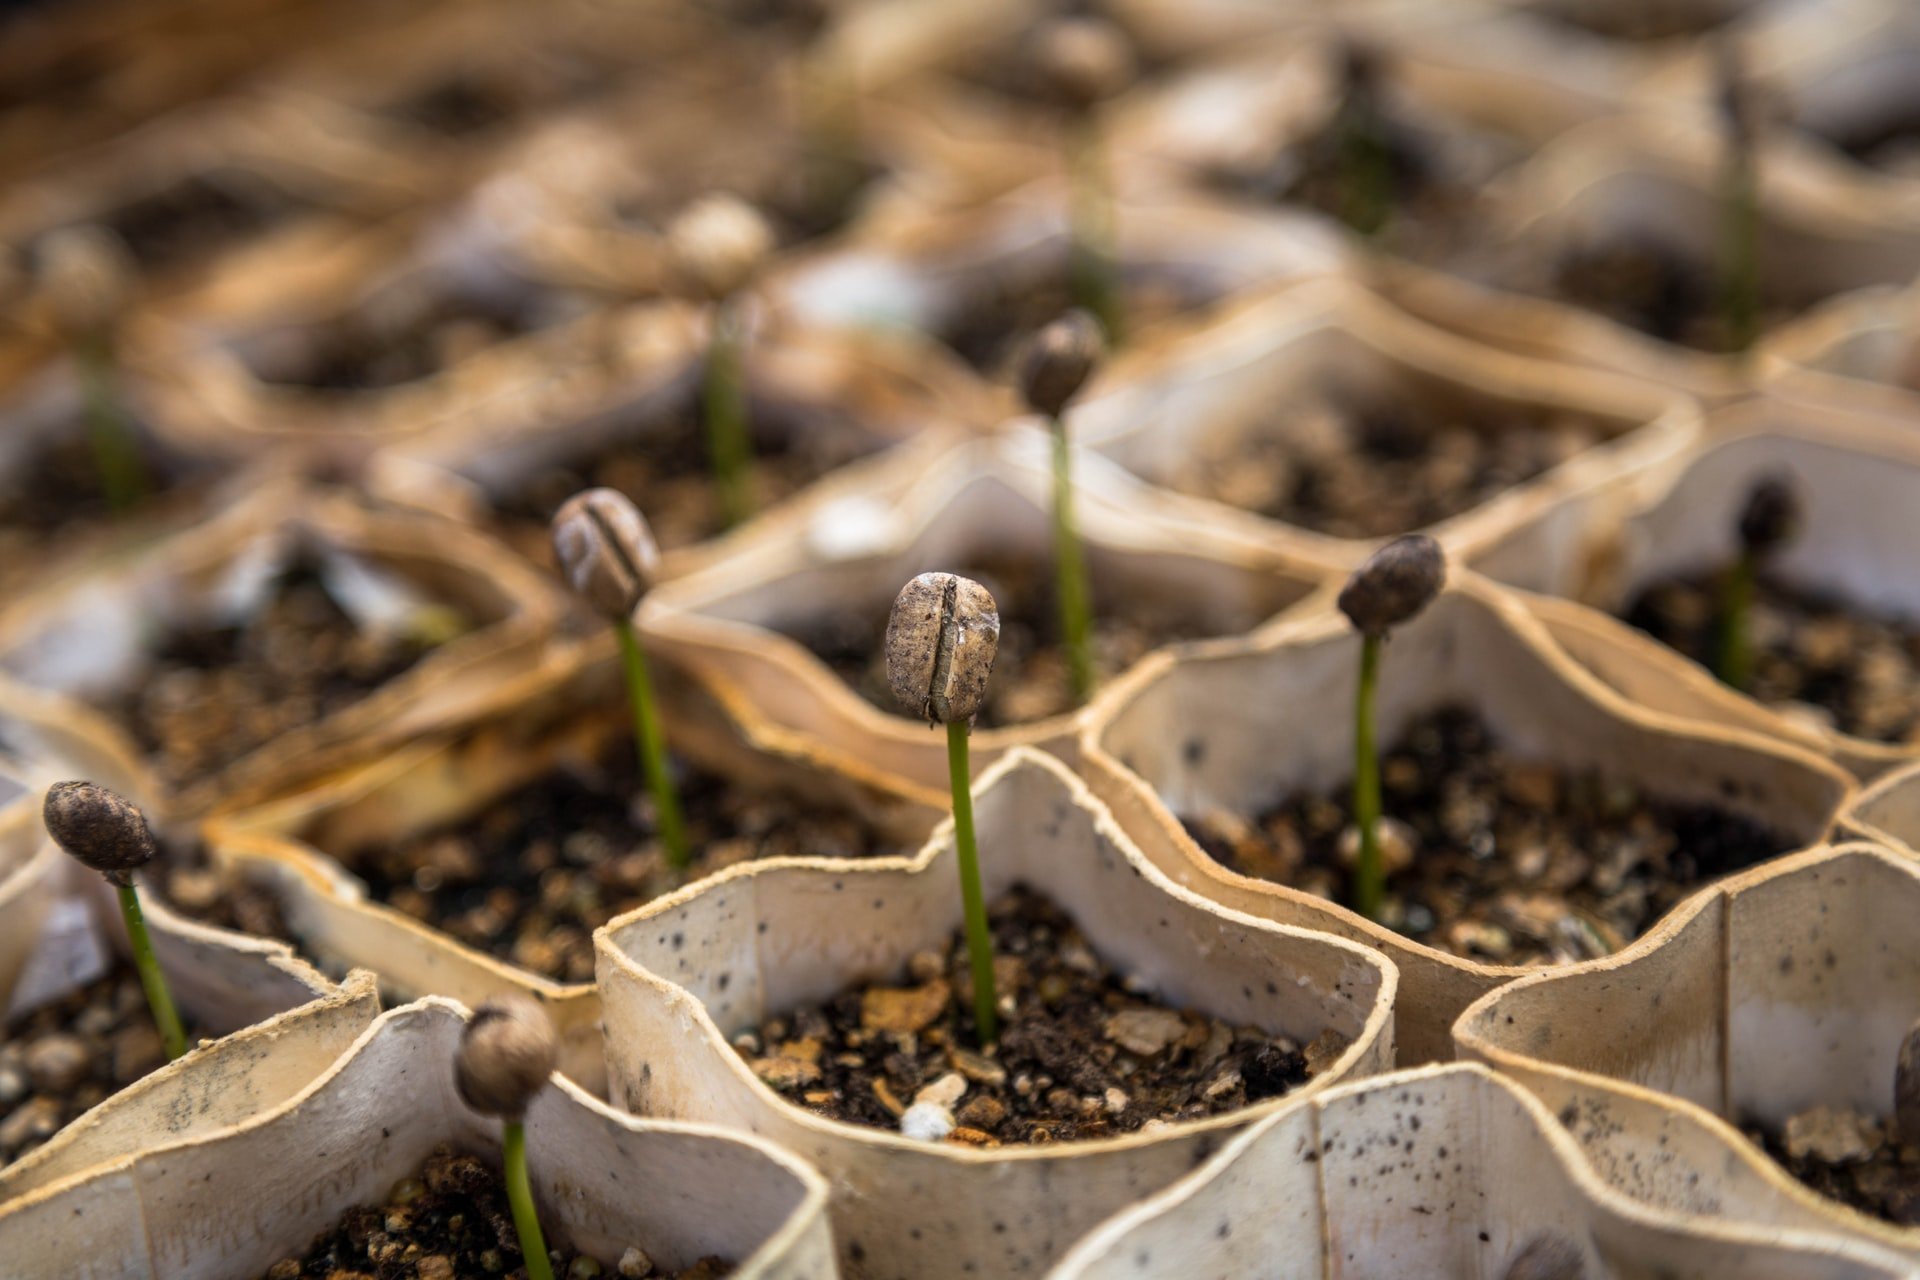 What To Do After Seeds Sprout - Growing Your Own Vegetables